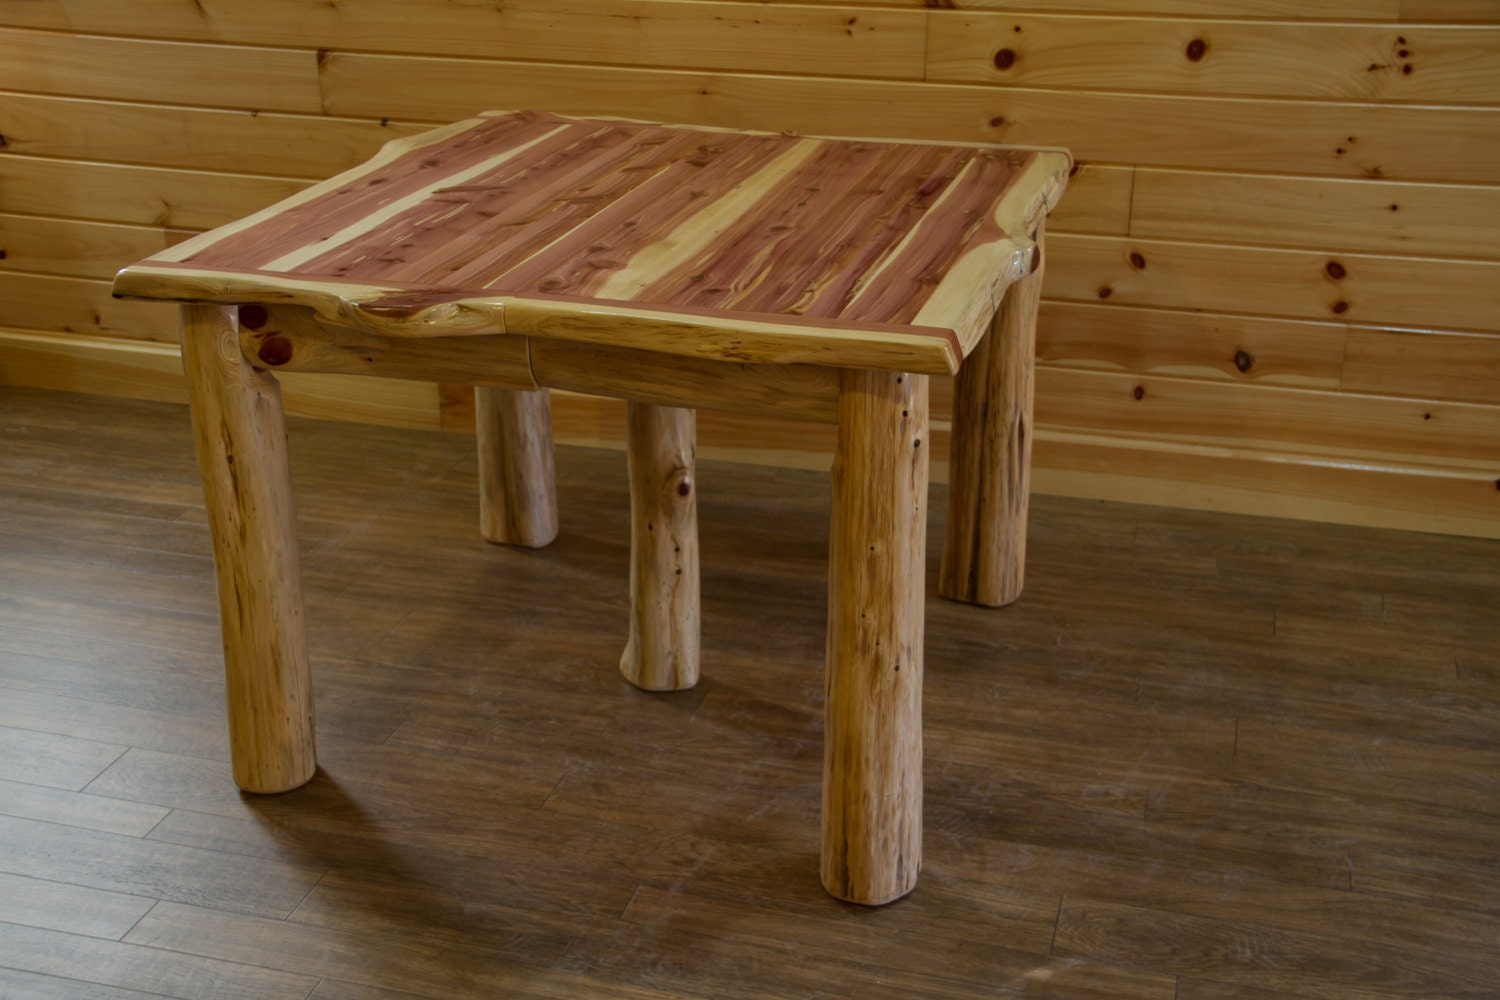 Rustic red cedar log extension dining table with leaves